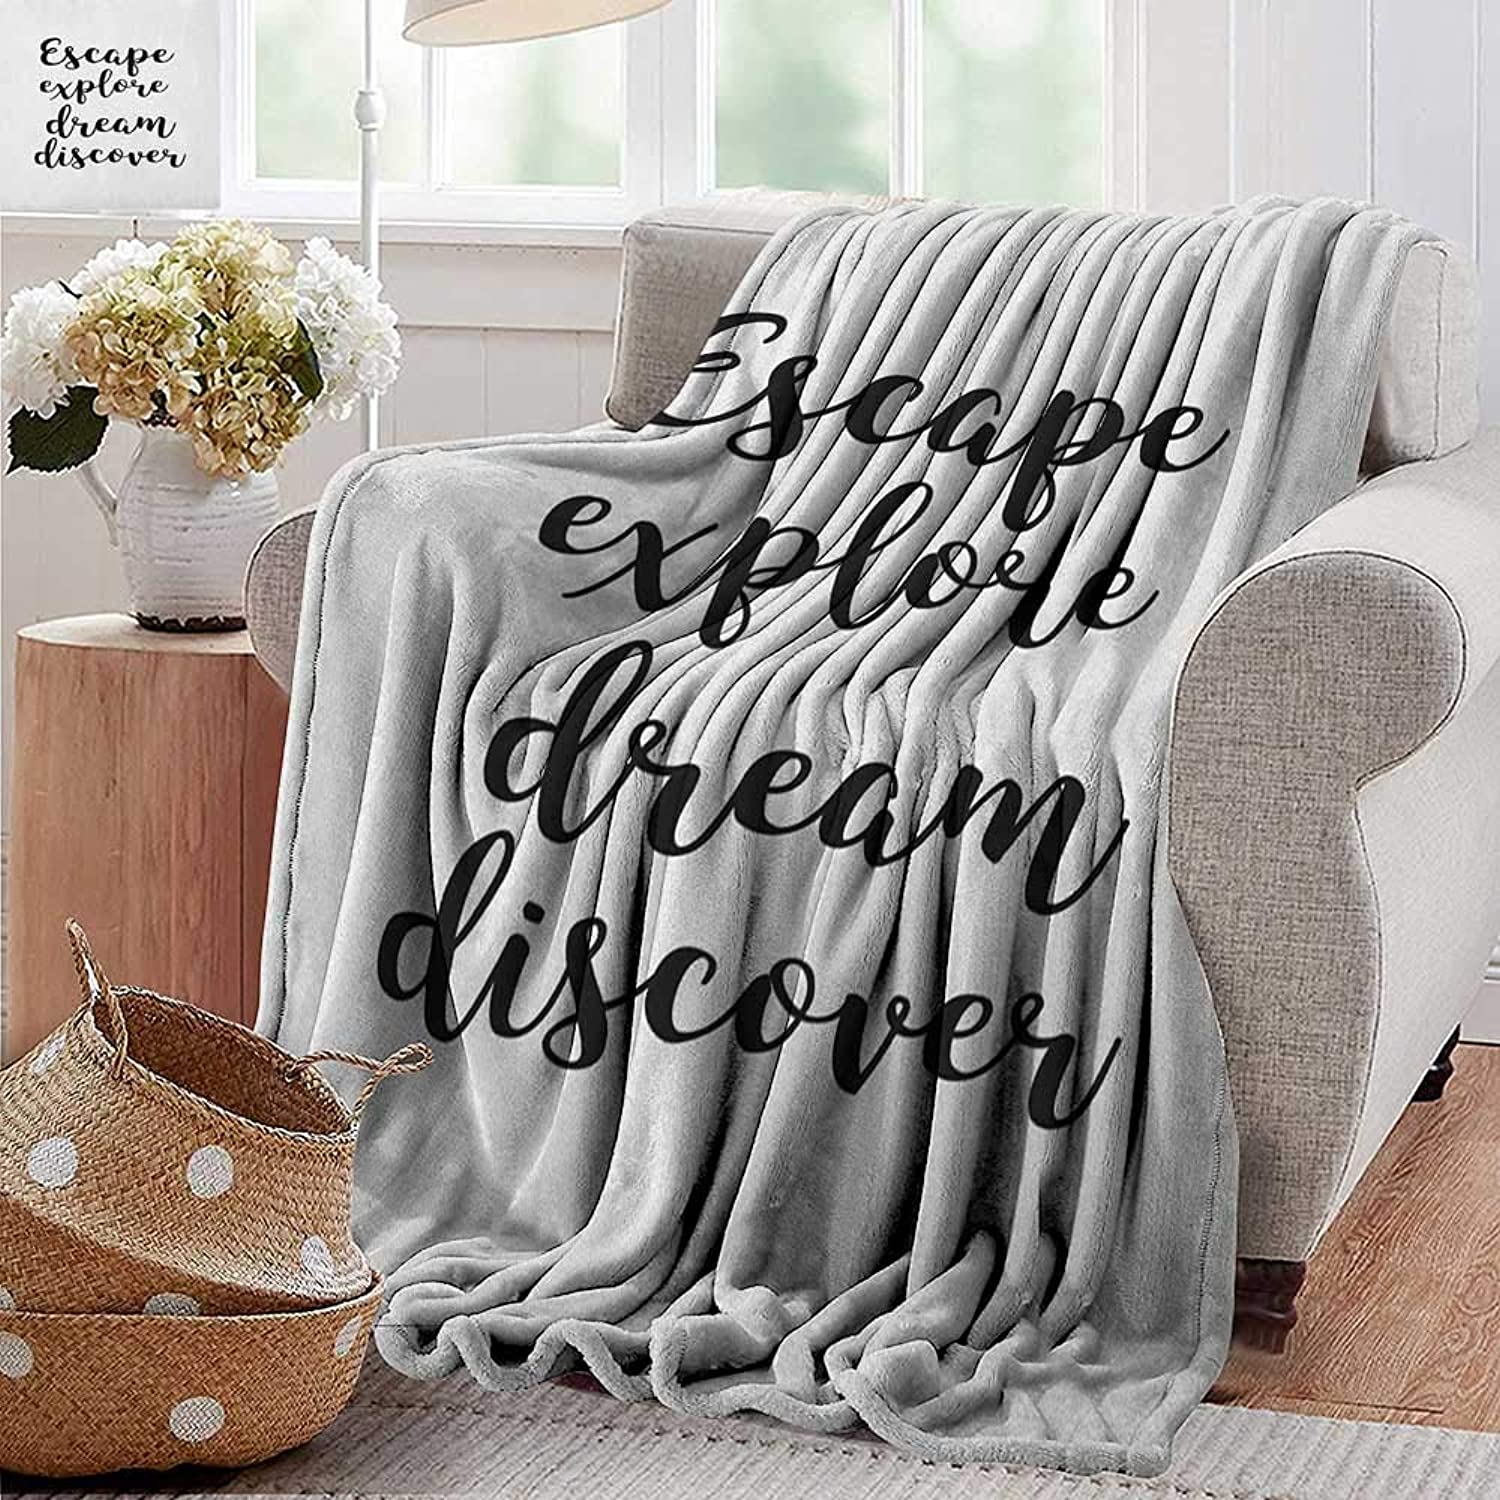 Weighted Blanket for Kids,Explore,Hand Drawn Brush Calligraphy Quote Escape Explore Dream Discover Lettering, Black and White,Weighted Blanket for Adults Kids, Better Deeper Sleep 50 x60